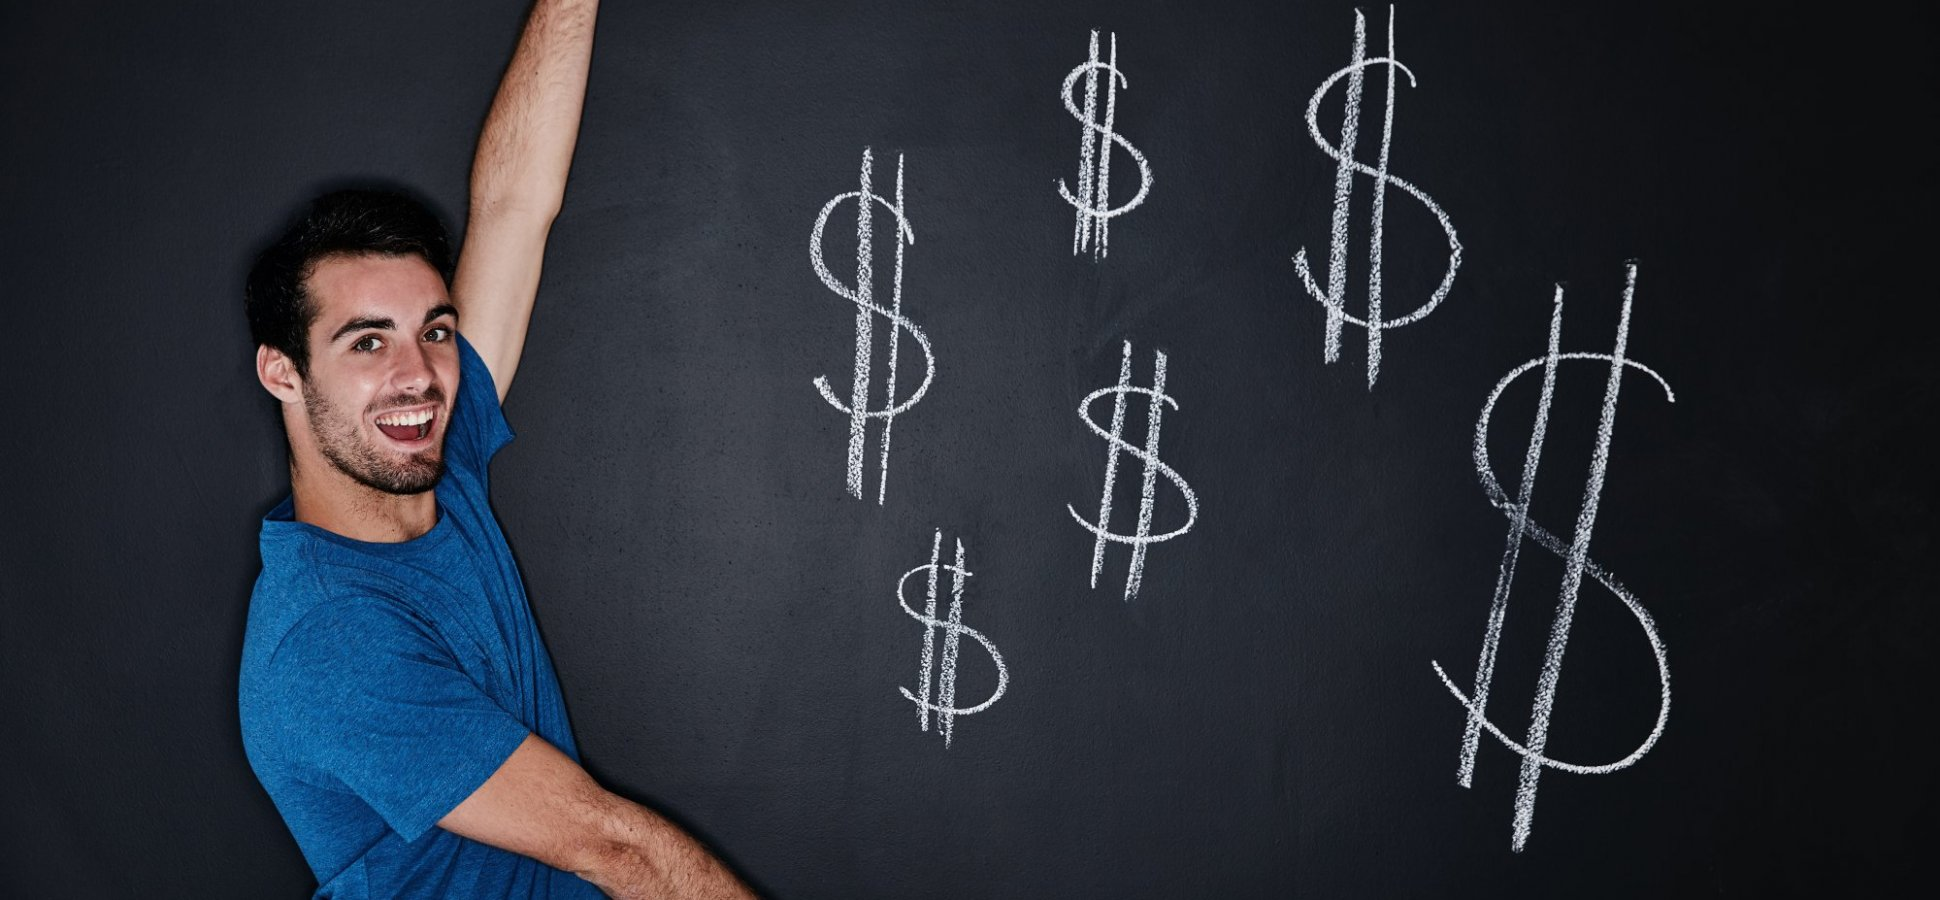 How To Structure Bonuses And Profit Sharing Plans - It isn't That Hard